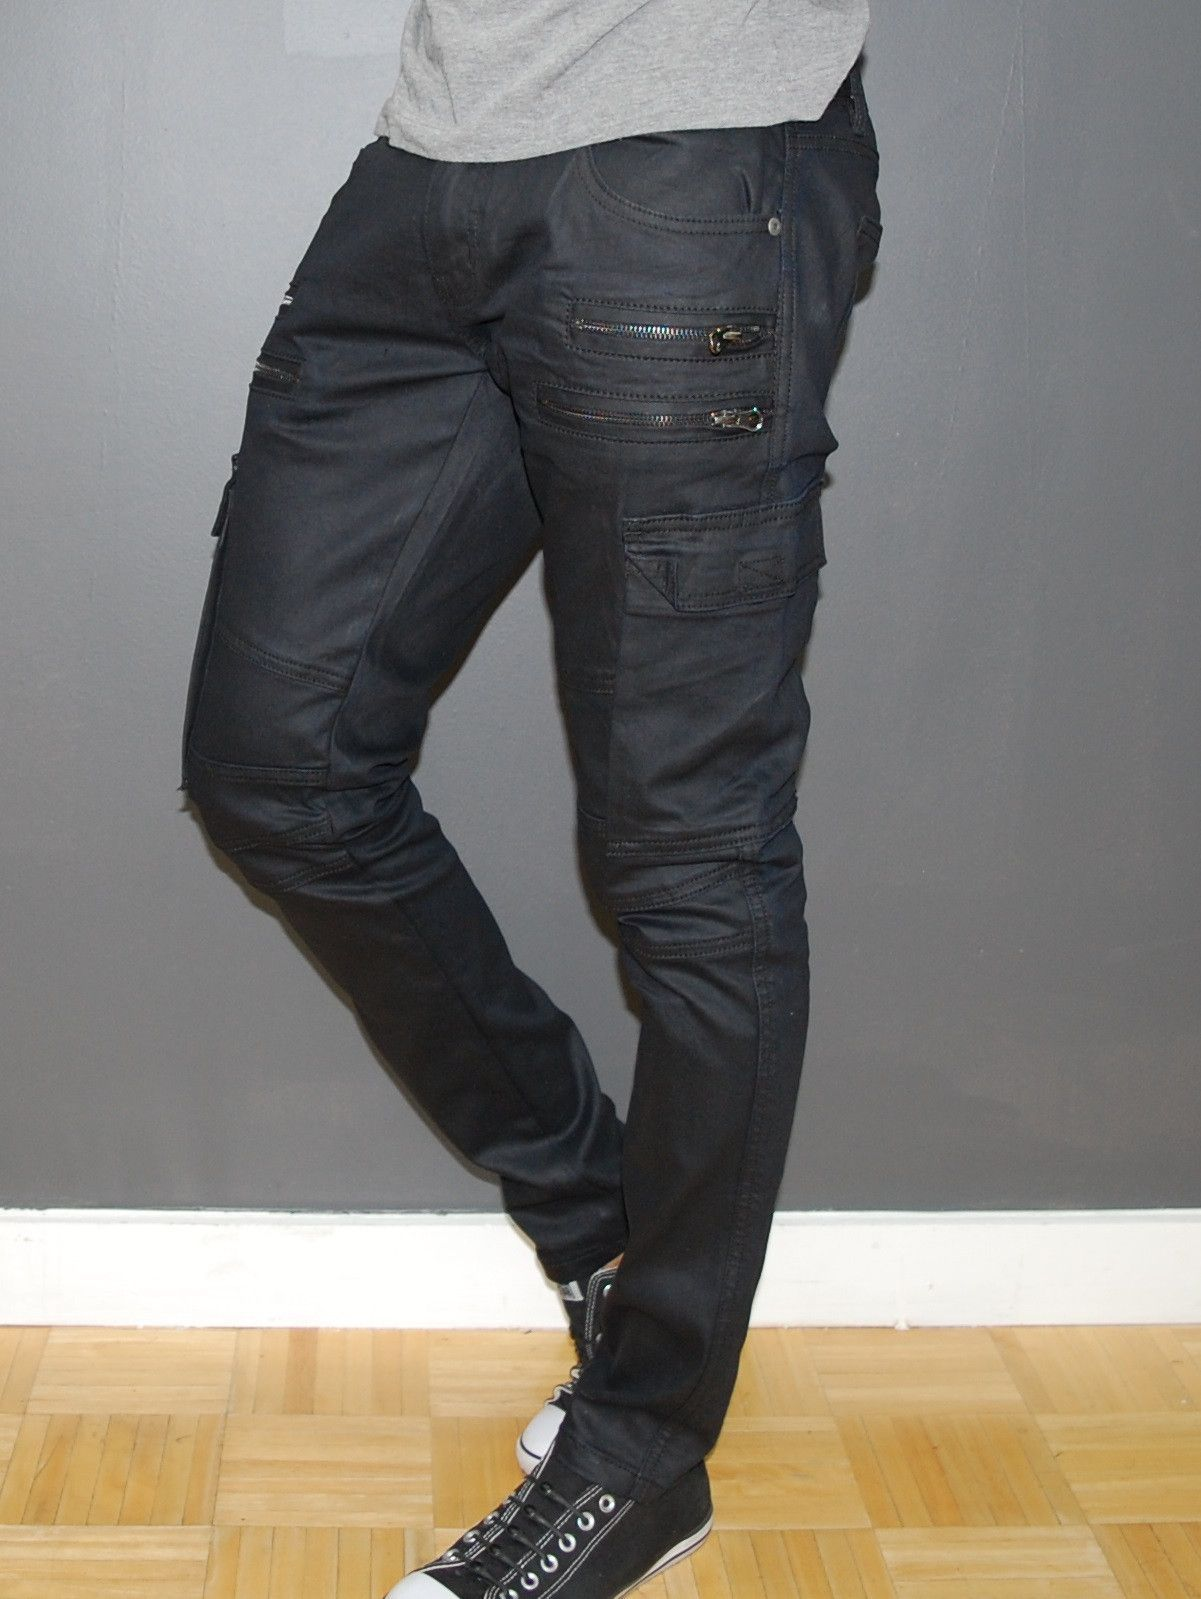 82333775f763ce Kilogram Men Slim Fit Side Zippers Coated Cargo Jeans - Black ...